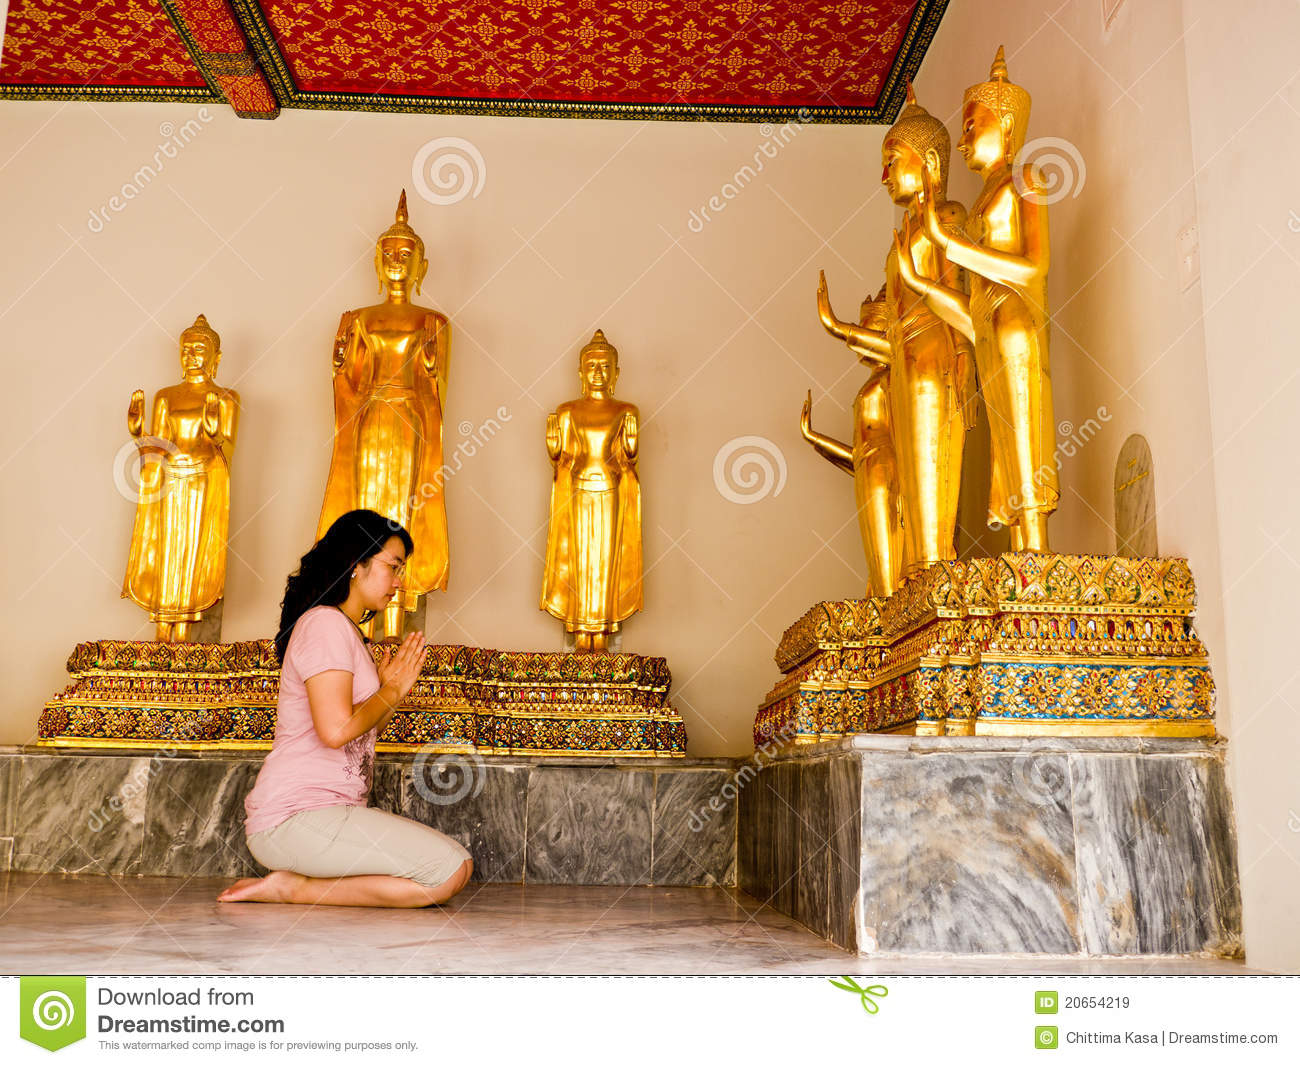 buddhist single women in trosky Man and woman must have freedom either to get married or to remain single this does not mean that buddhism is against marriage nobody in this world would say that marriage is bad and there is no religion which is against marriage.